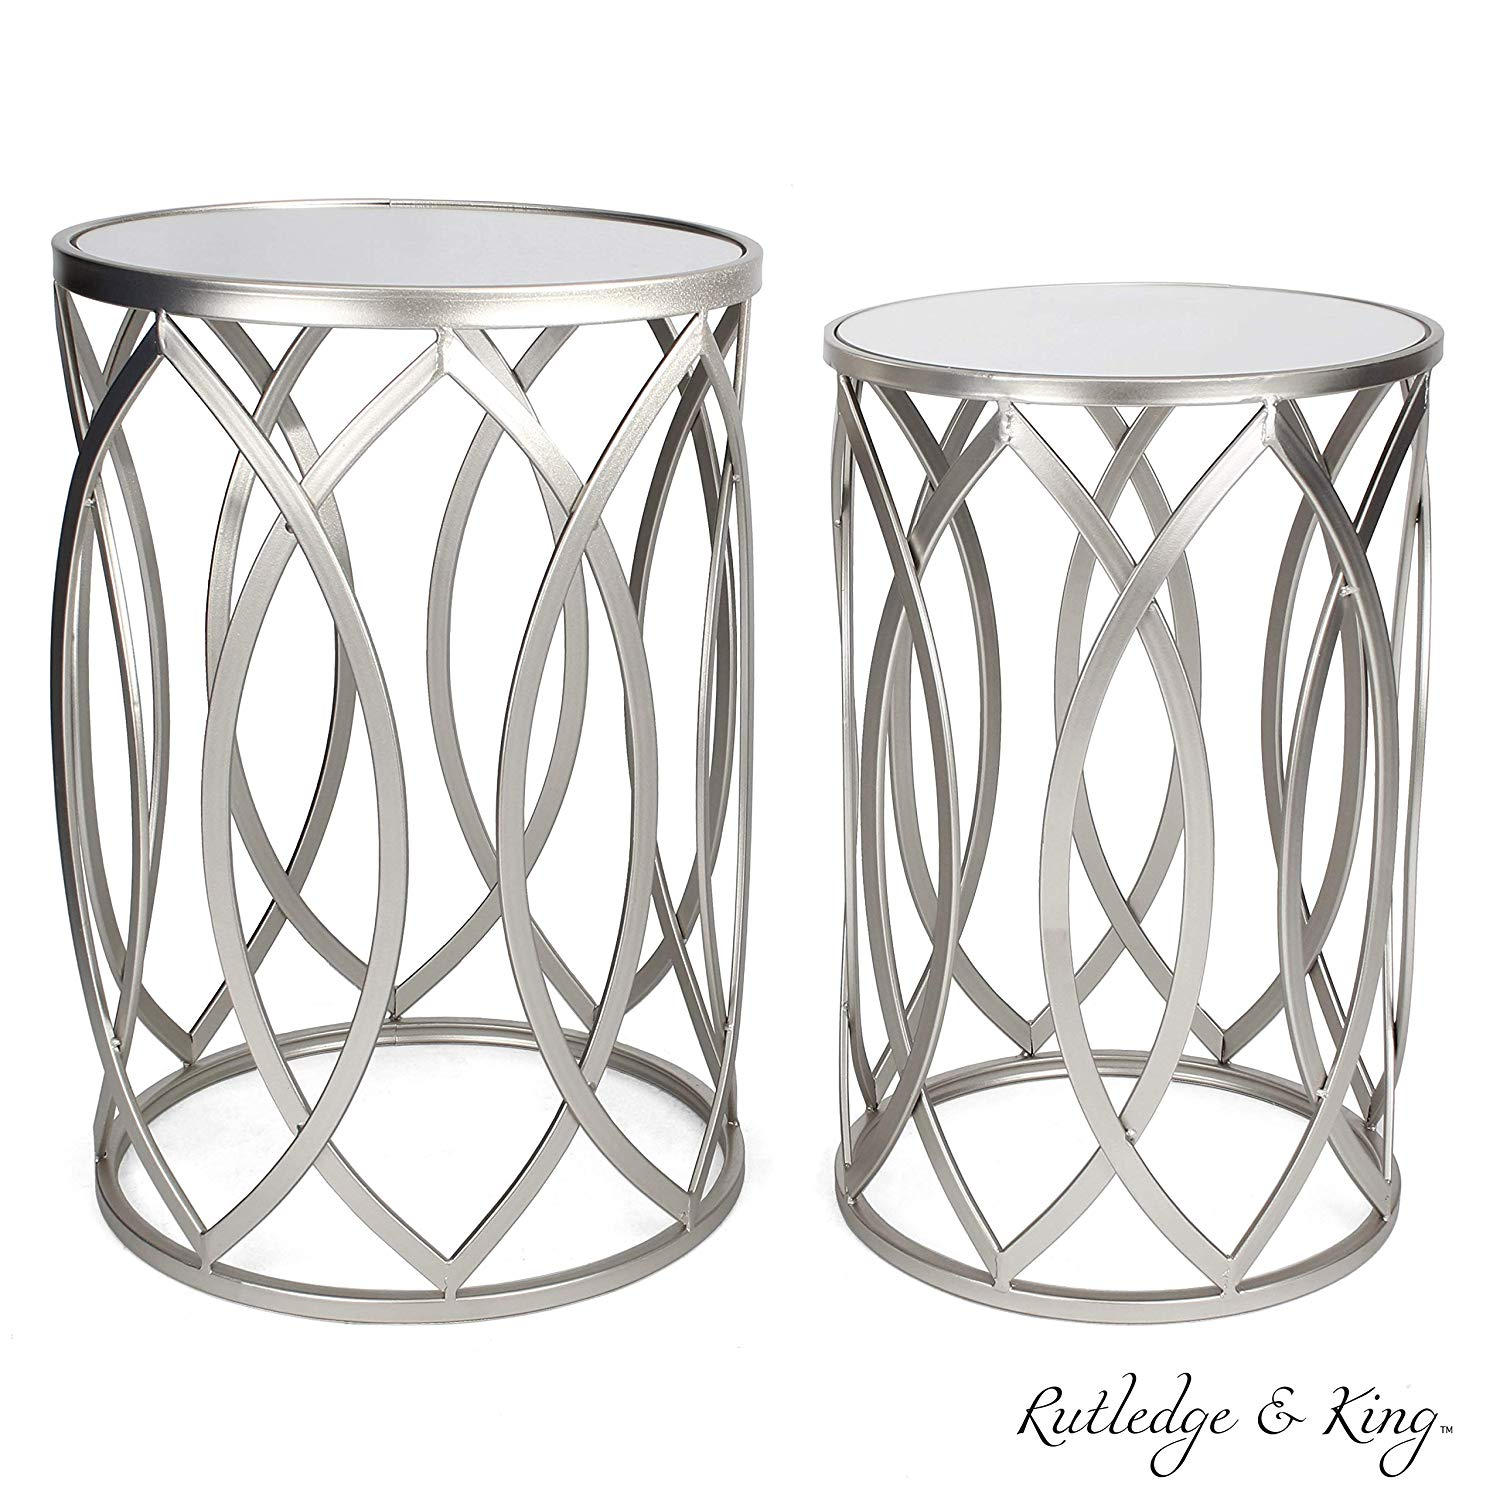 round end table set silver tables with mirrored small accent furniture tops nesting and metal side rutledge king blufton ikea kallax boxes wine holder wood bright colored chairs